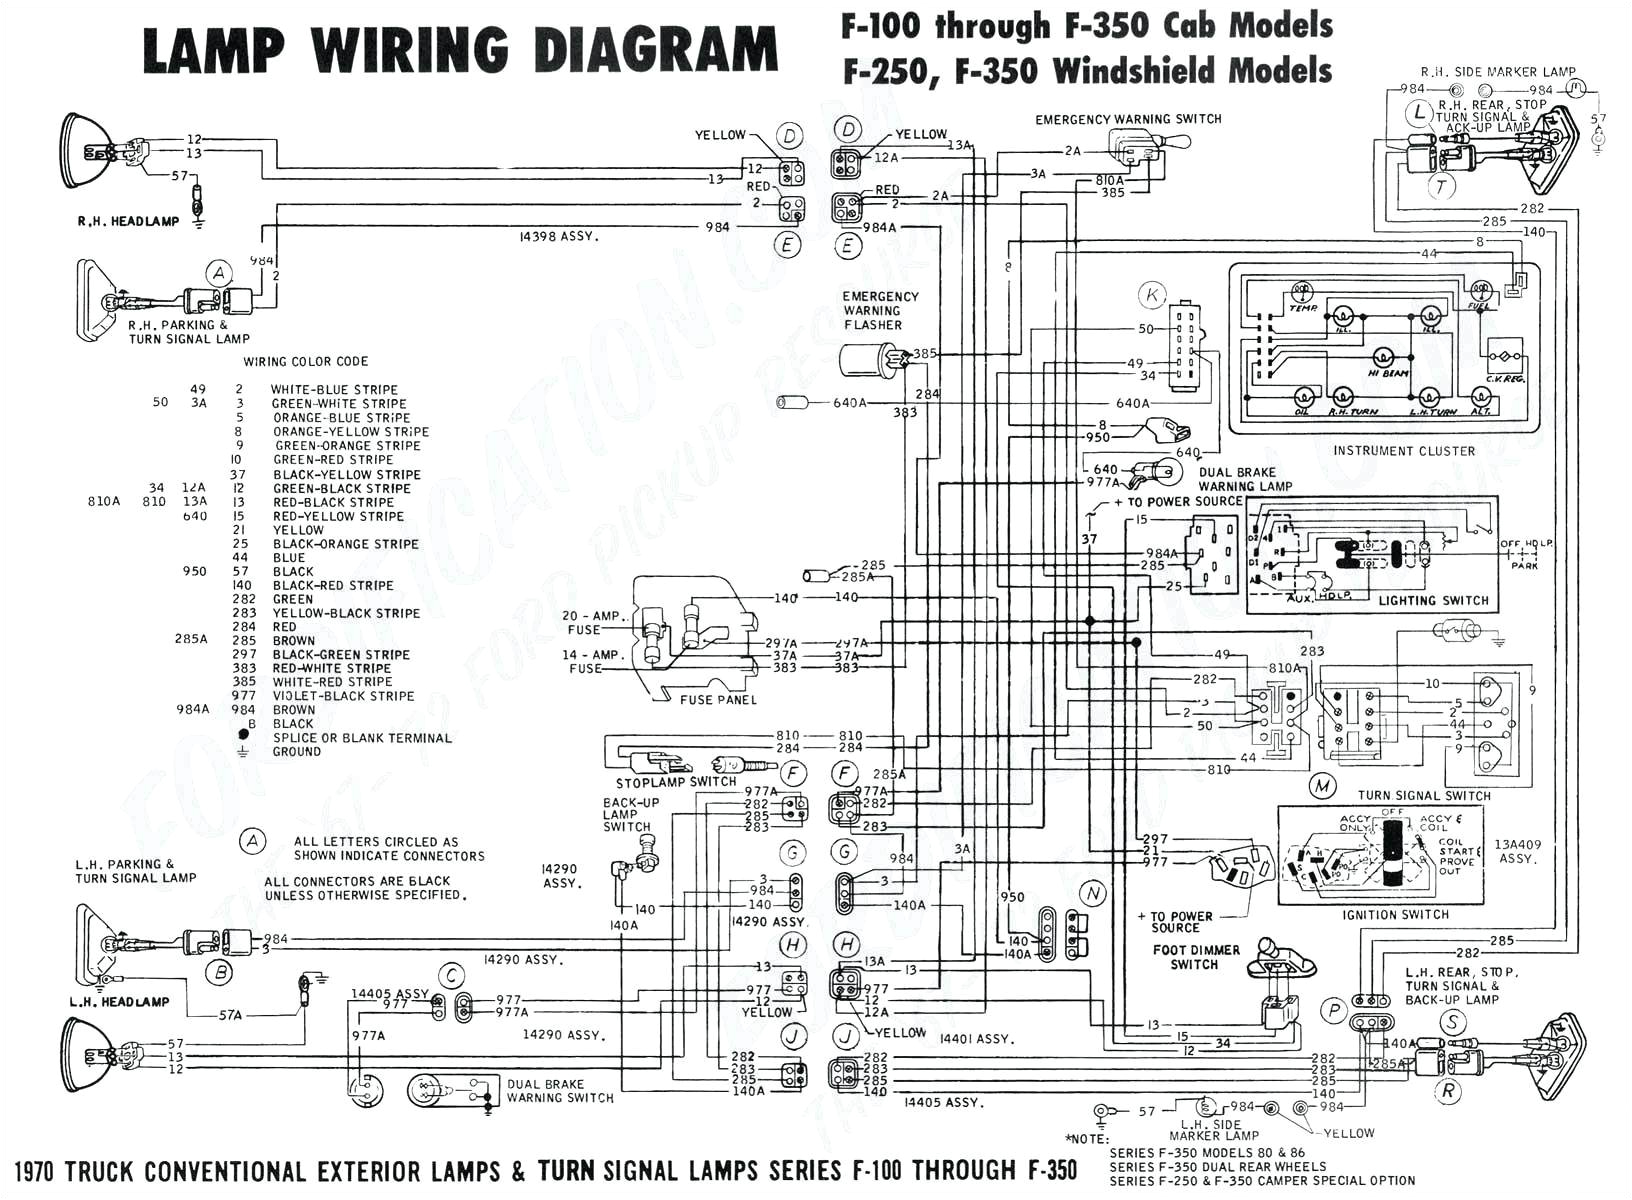 Autohelm 4000 Wiring Diagram Hdtv Wiring Advanced Diagrams Wiring Diagram User